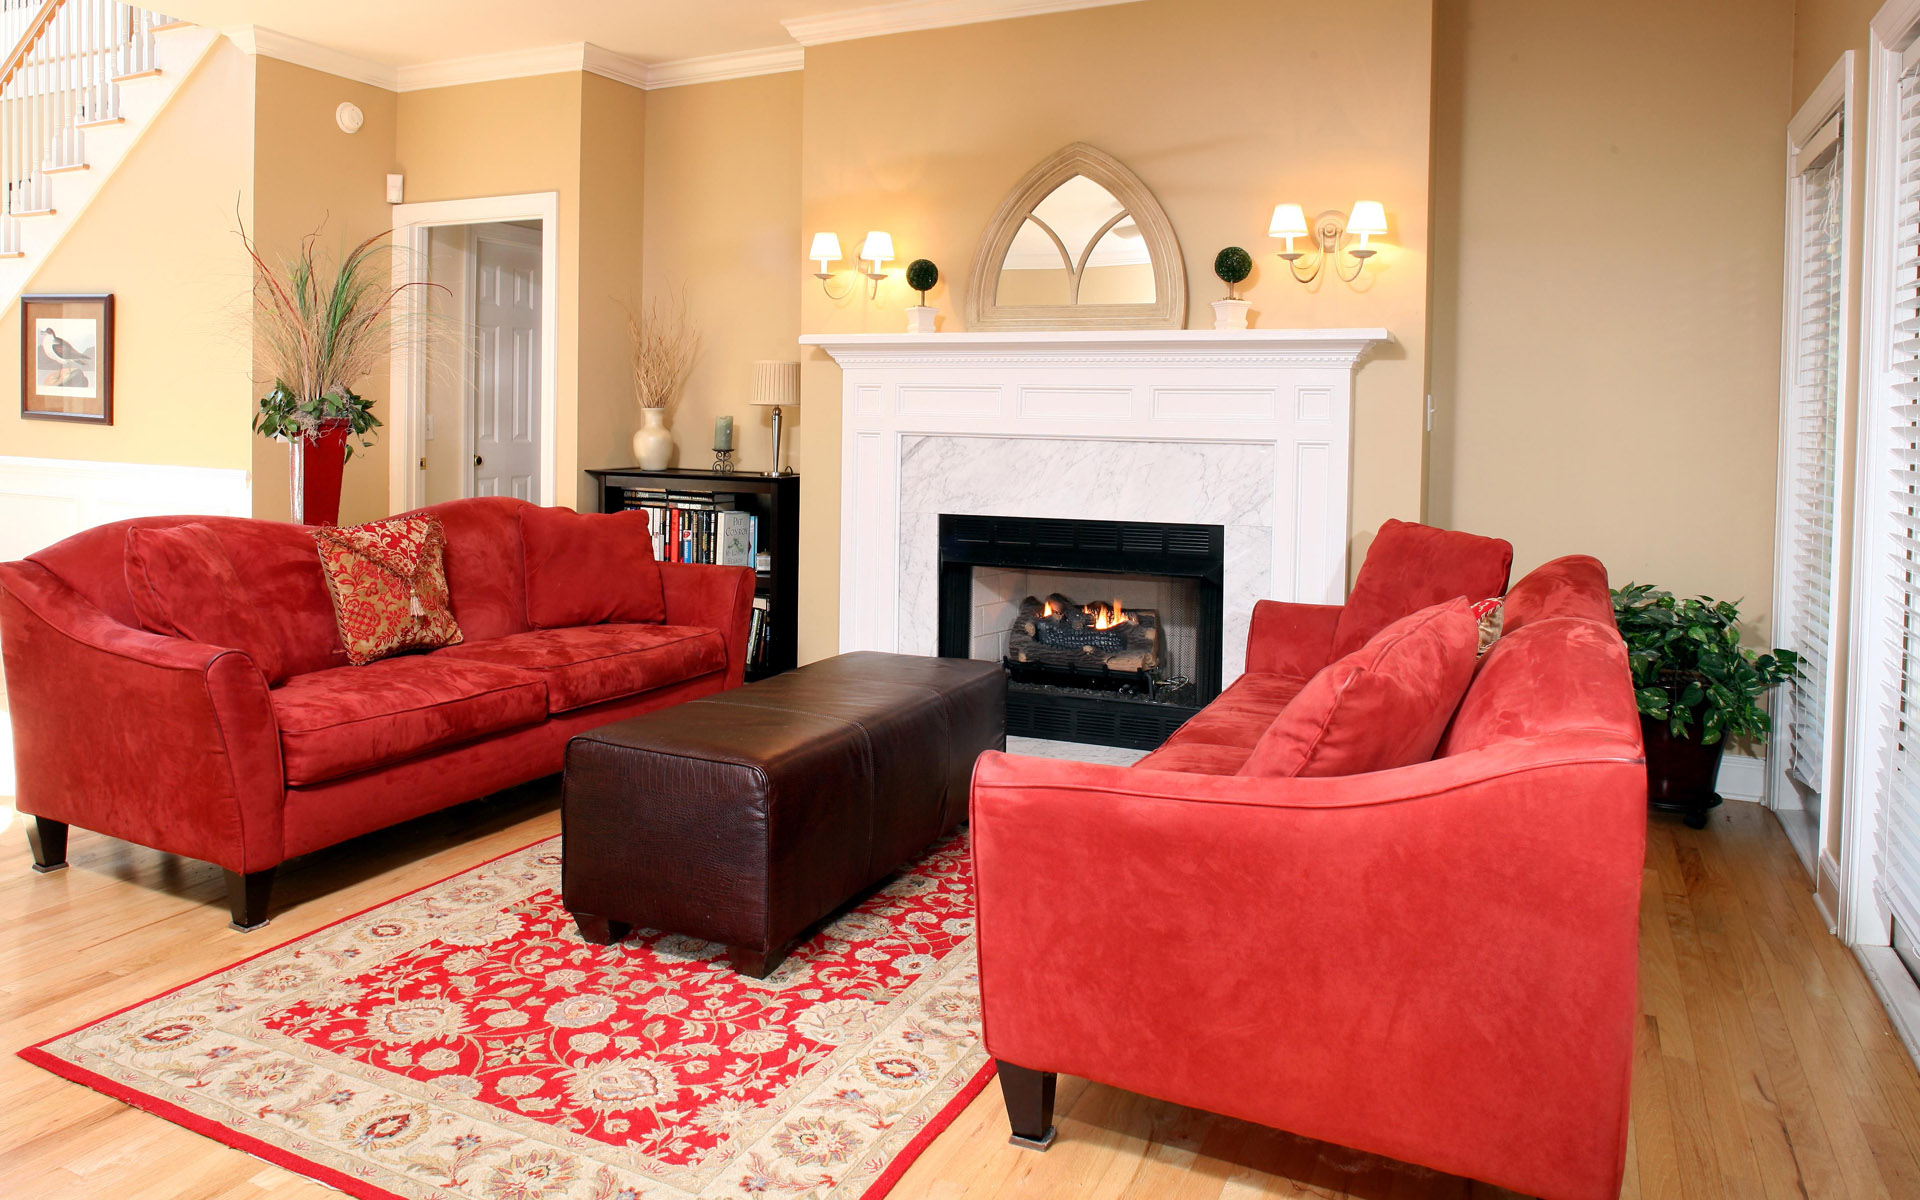 Western-style home fireplace 23249